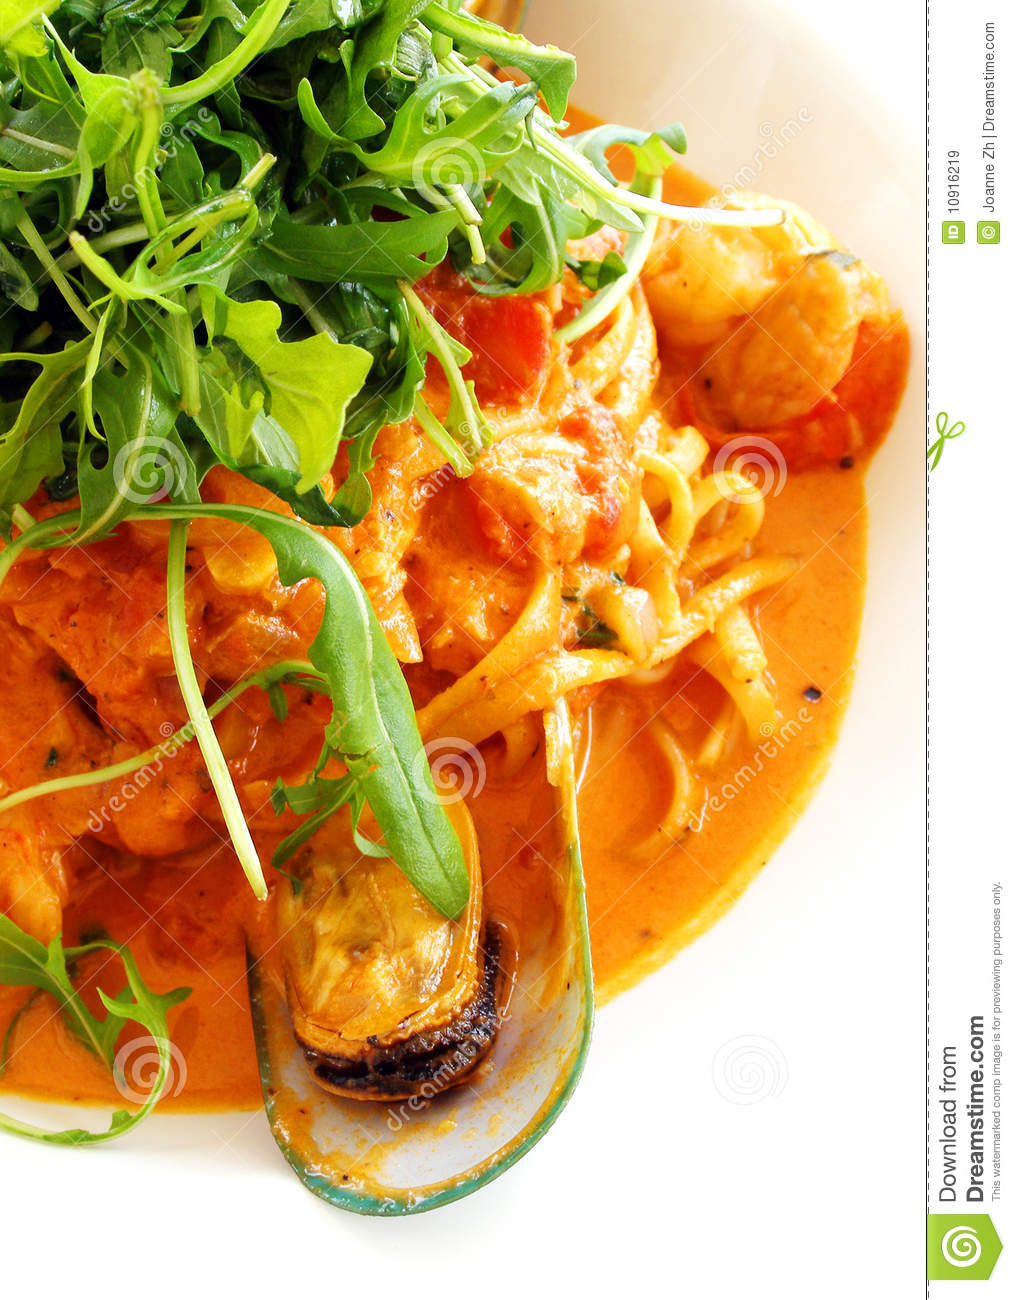 Noodles with shellfish dish